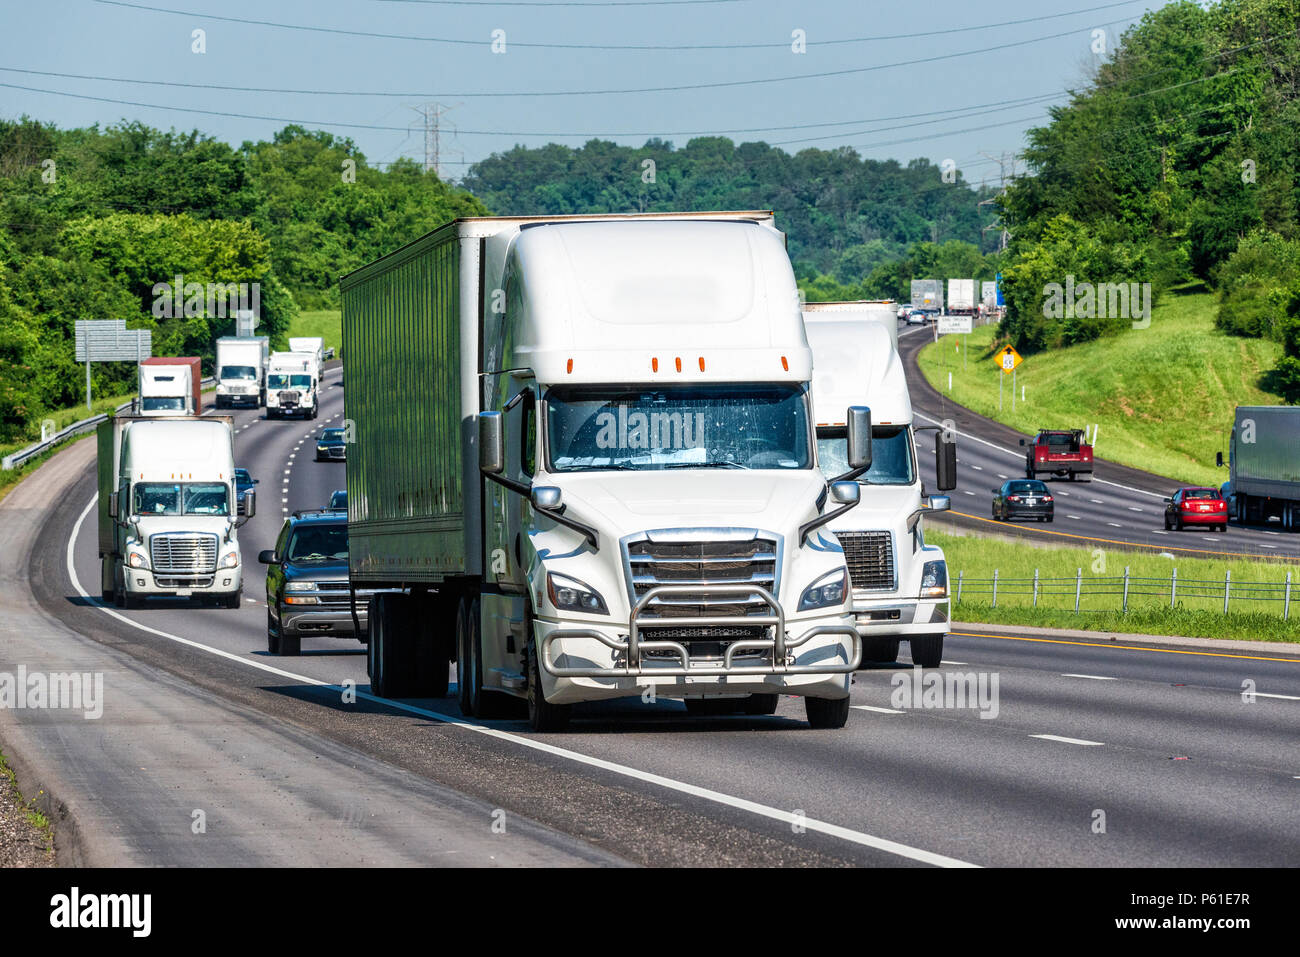 Trucks and personal vehicles navigate a busy interstate. Note: All logos and identifying marks have been removed from all vehicles.  Image was created - Stock Image